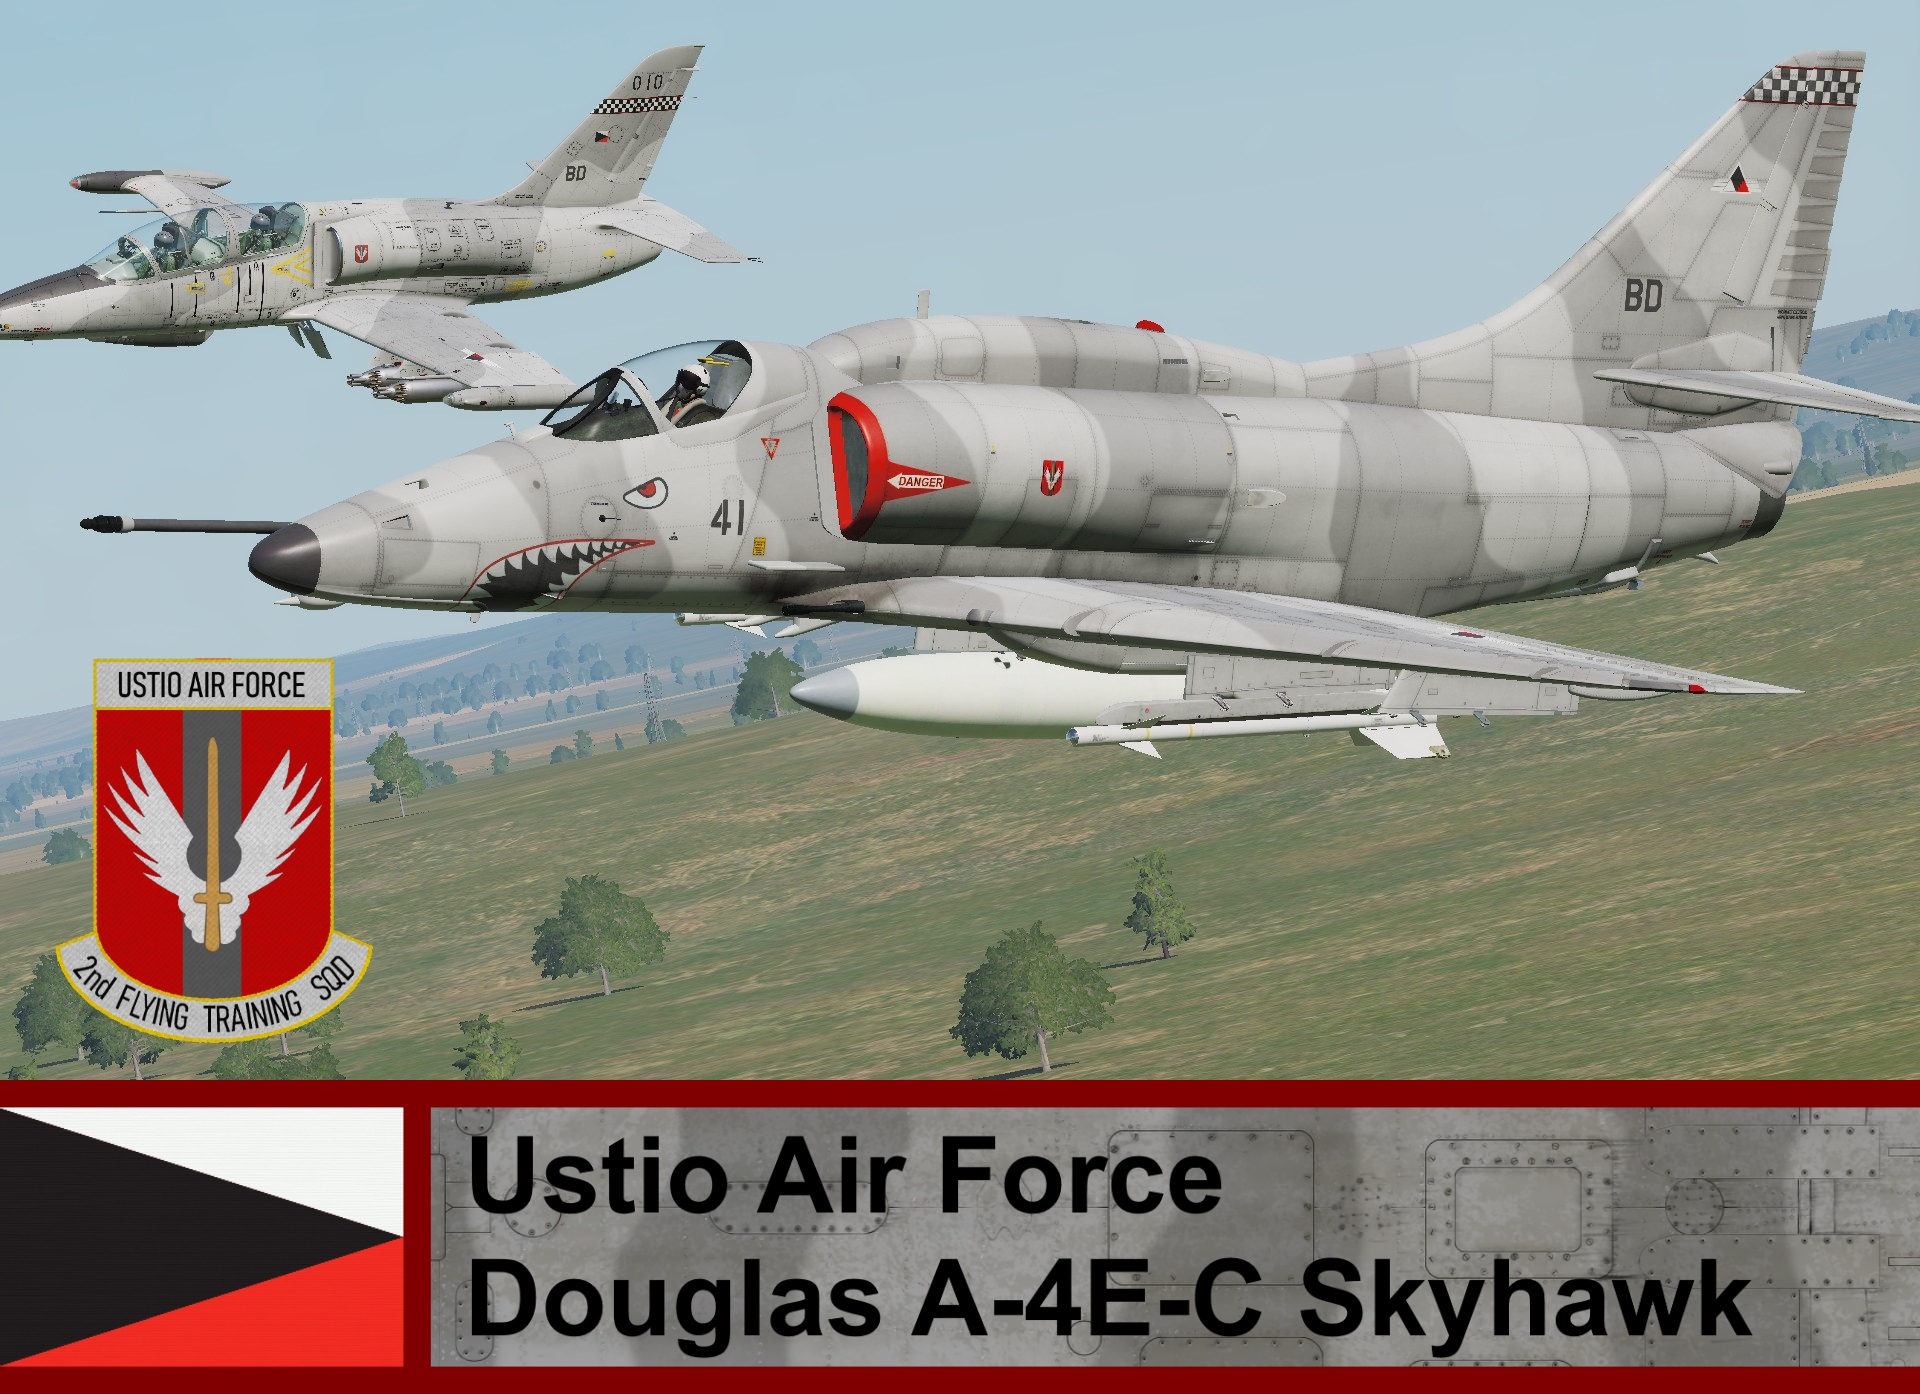 Ustio Air Force A-4E-C SkyHawk- Ace Combat (2nd FTS) Cpt: Gabriel Nowak